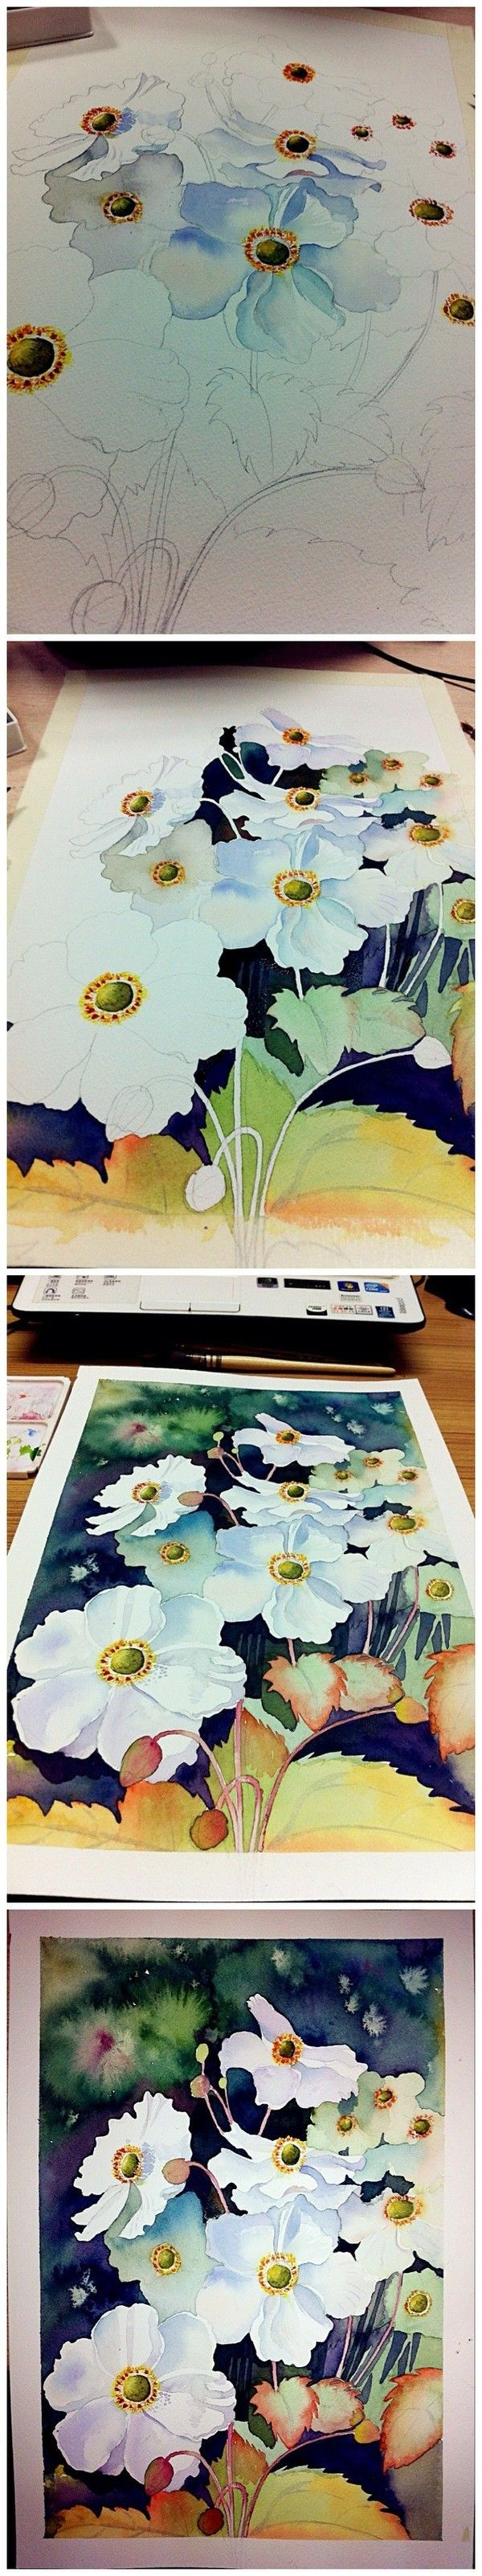 Watercolor illustrations step by step